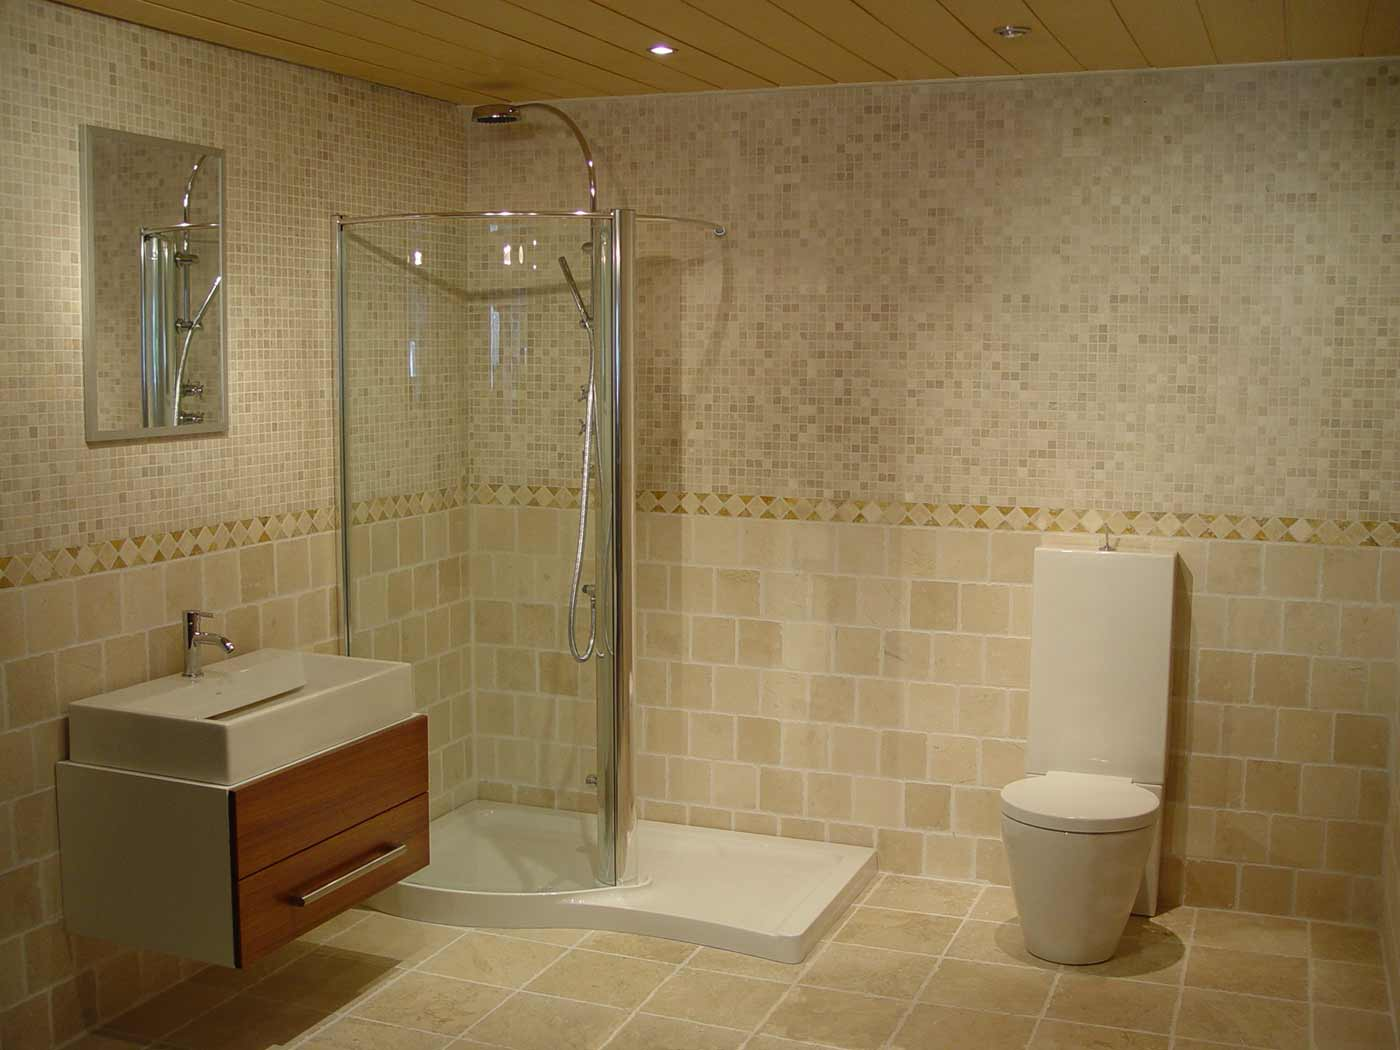 Best Tile for Bathroom Ideas1 Bathroom Ideas Glass Tile